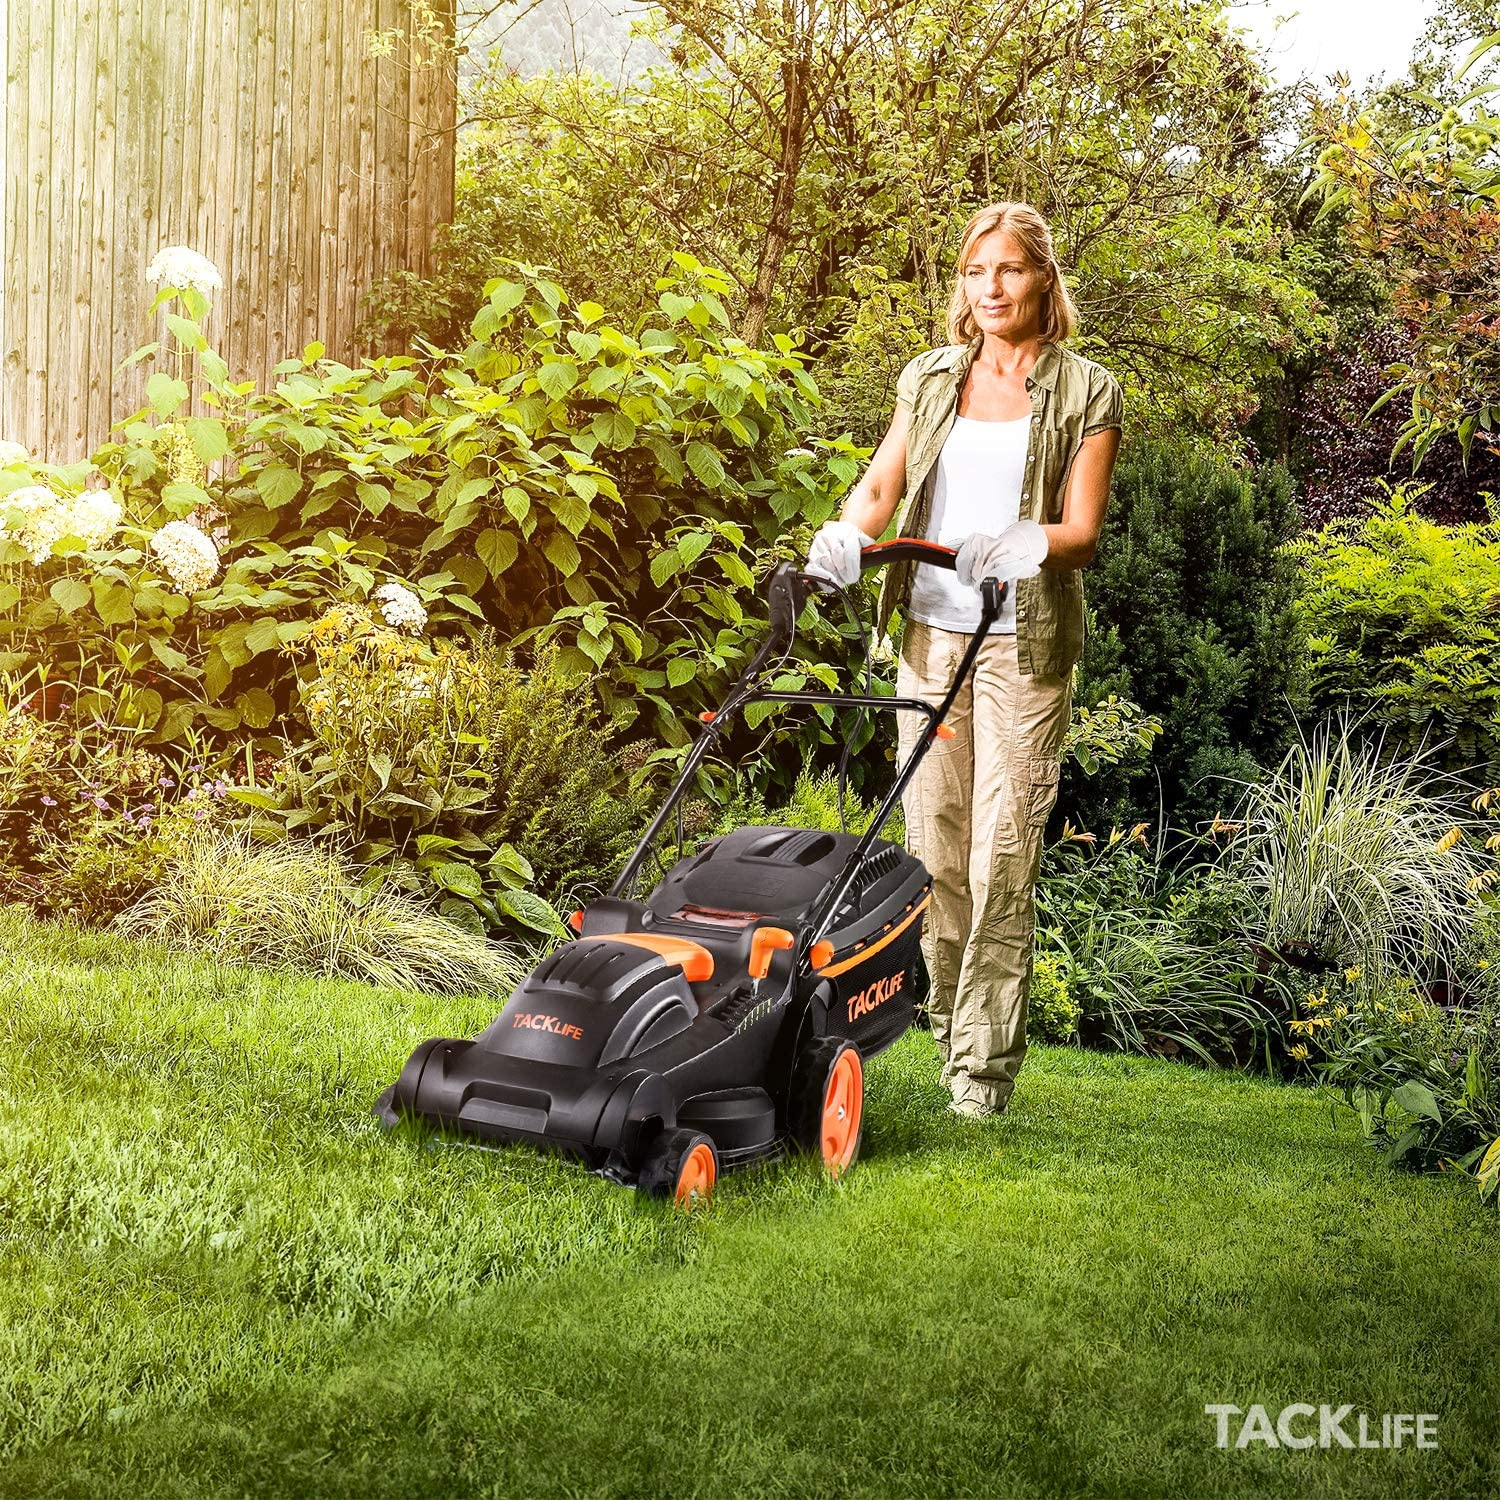 TACKLIFE best Electric Lawn Mower